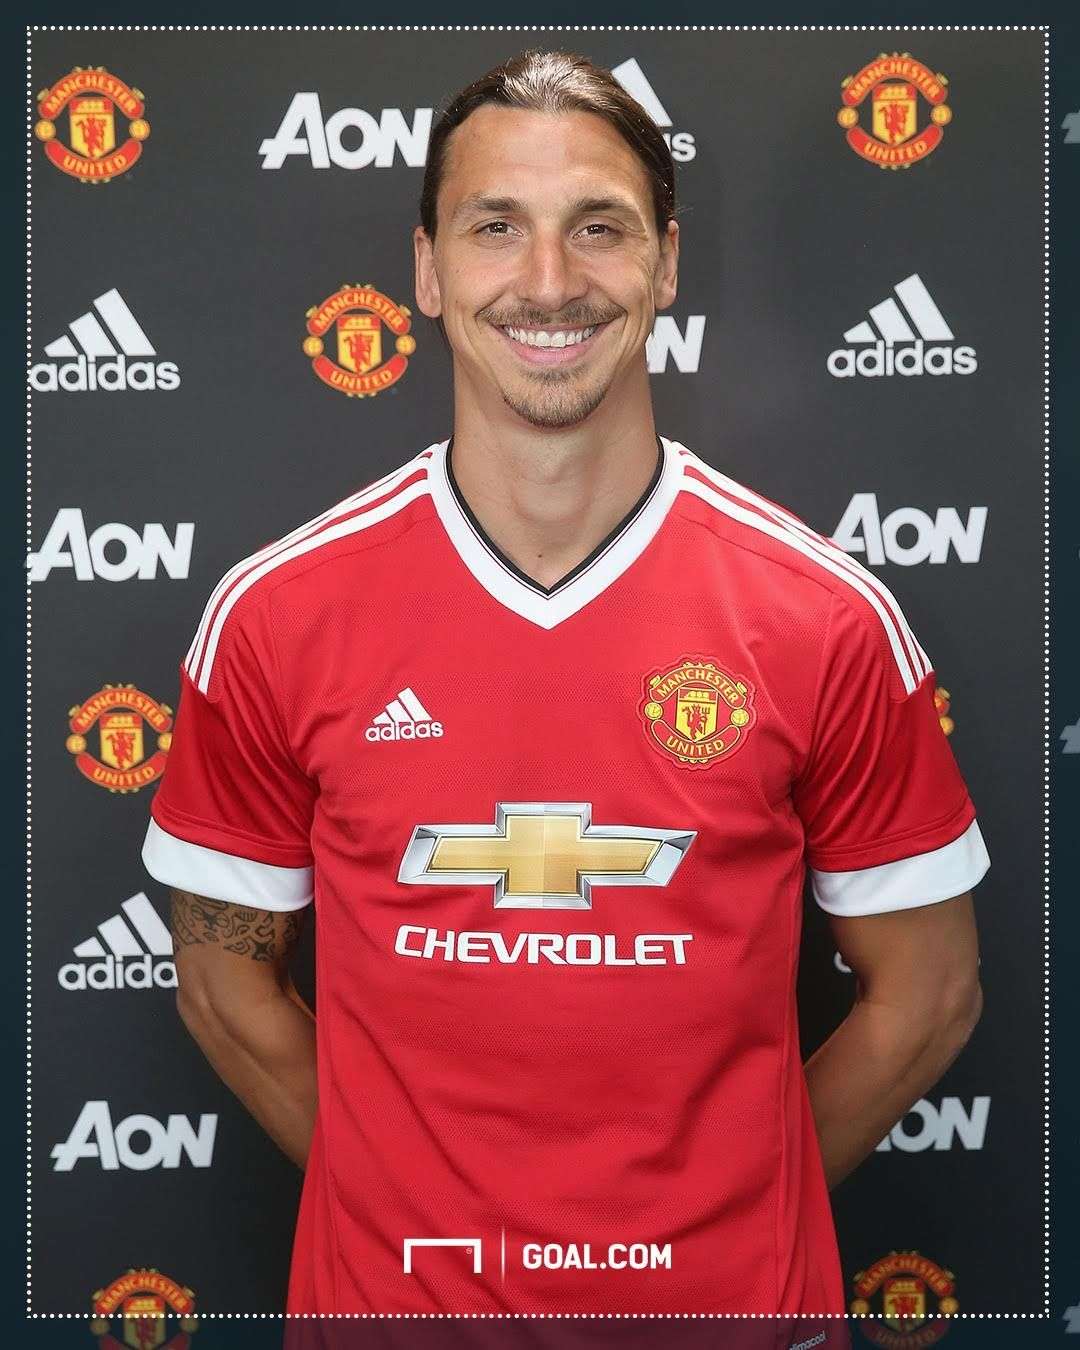 Manchester United Have Effectively Confirmed The Signing Manchester United Have Confirmed Their Third Summer Signing Manchester United Have Conf Fotboll Former